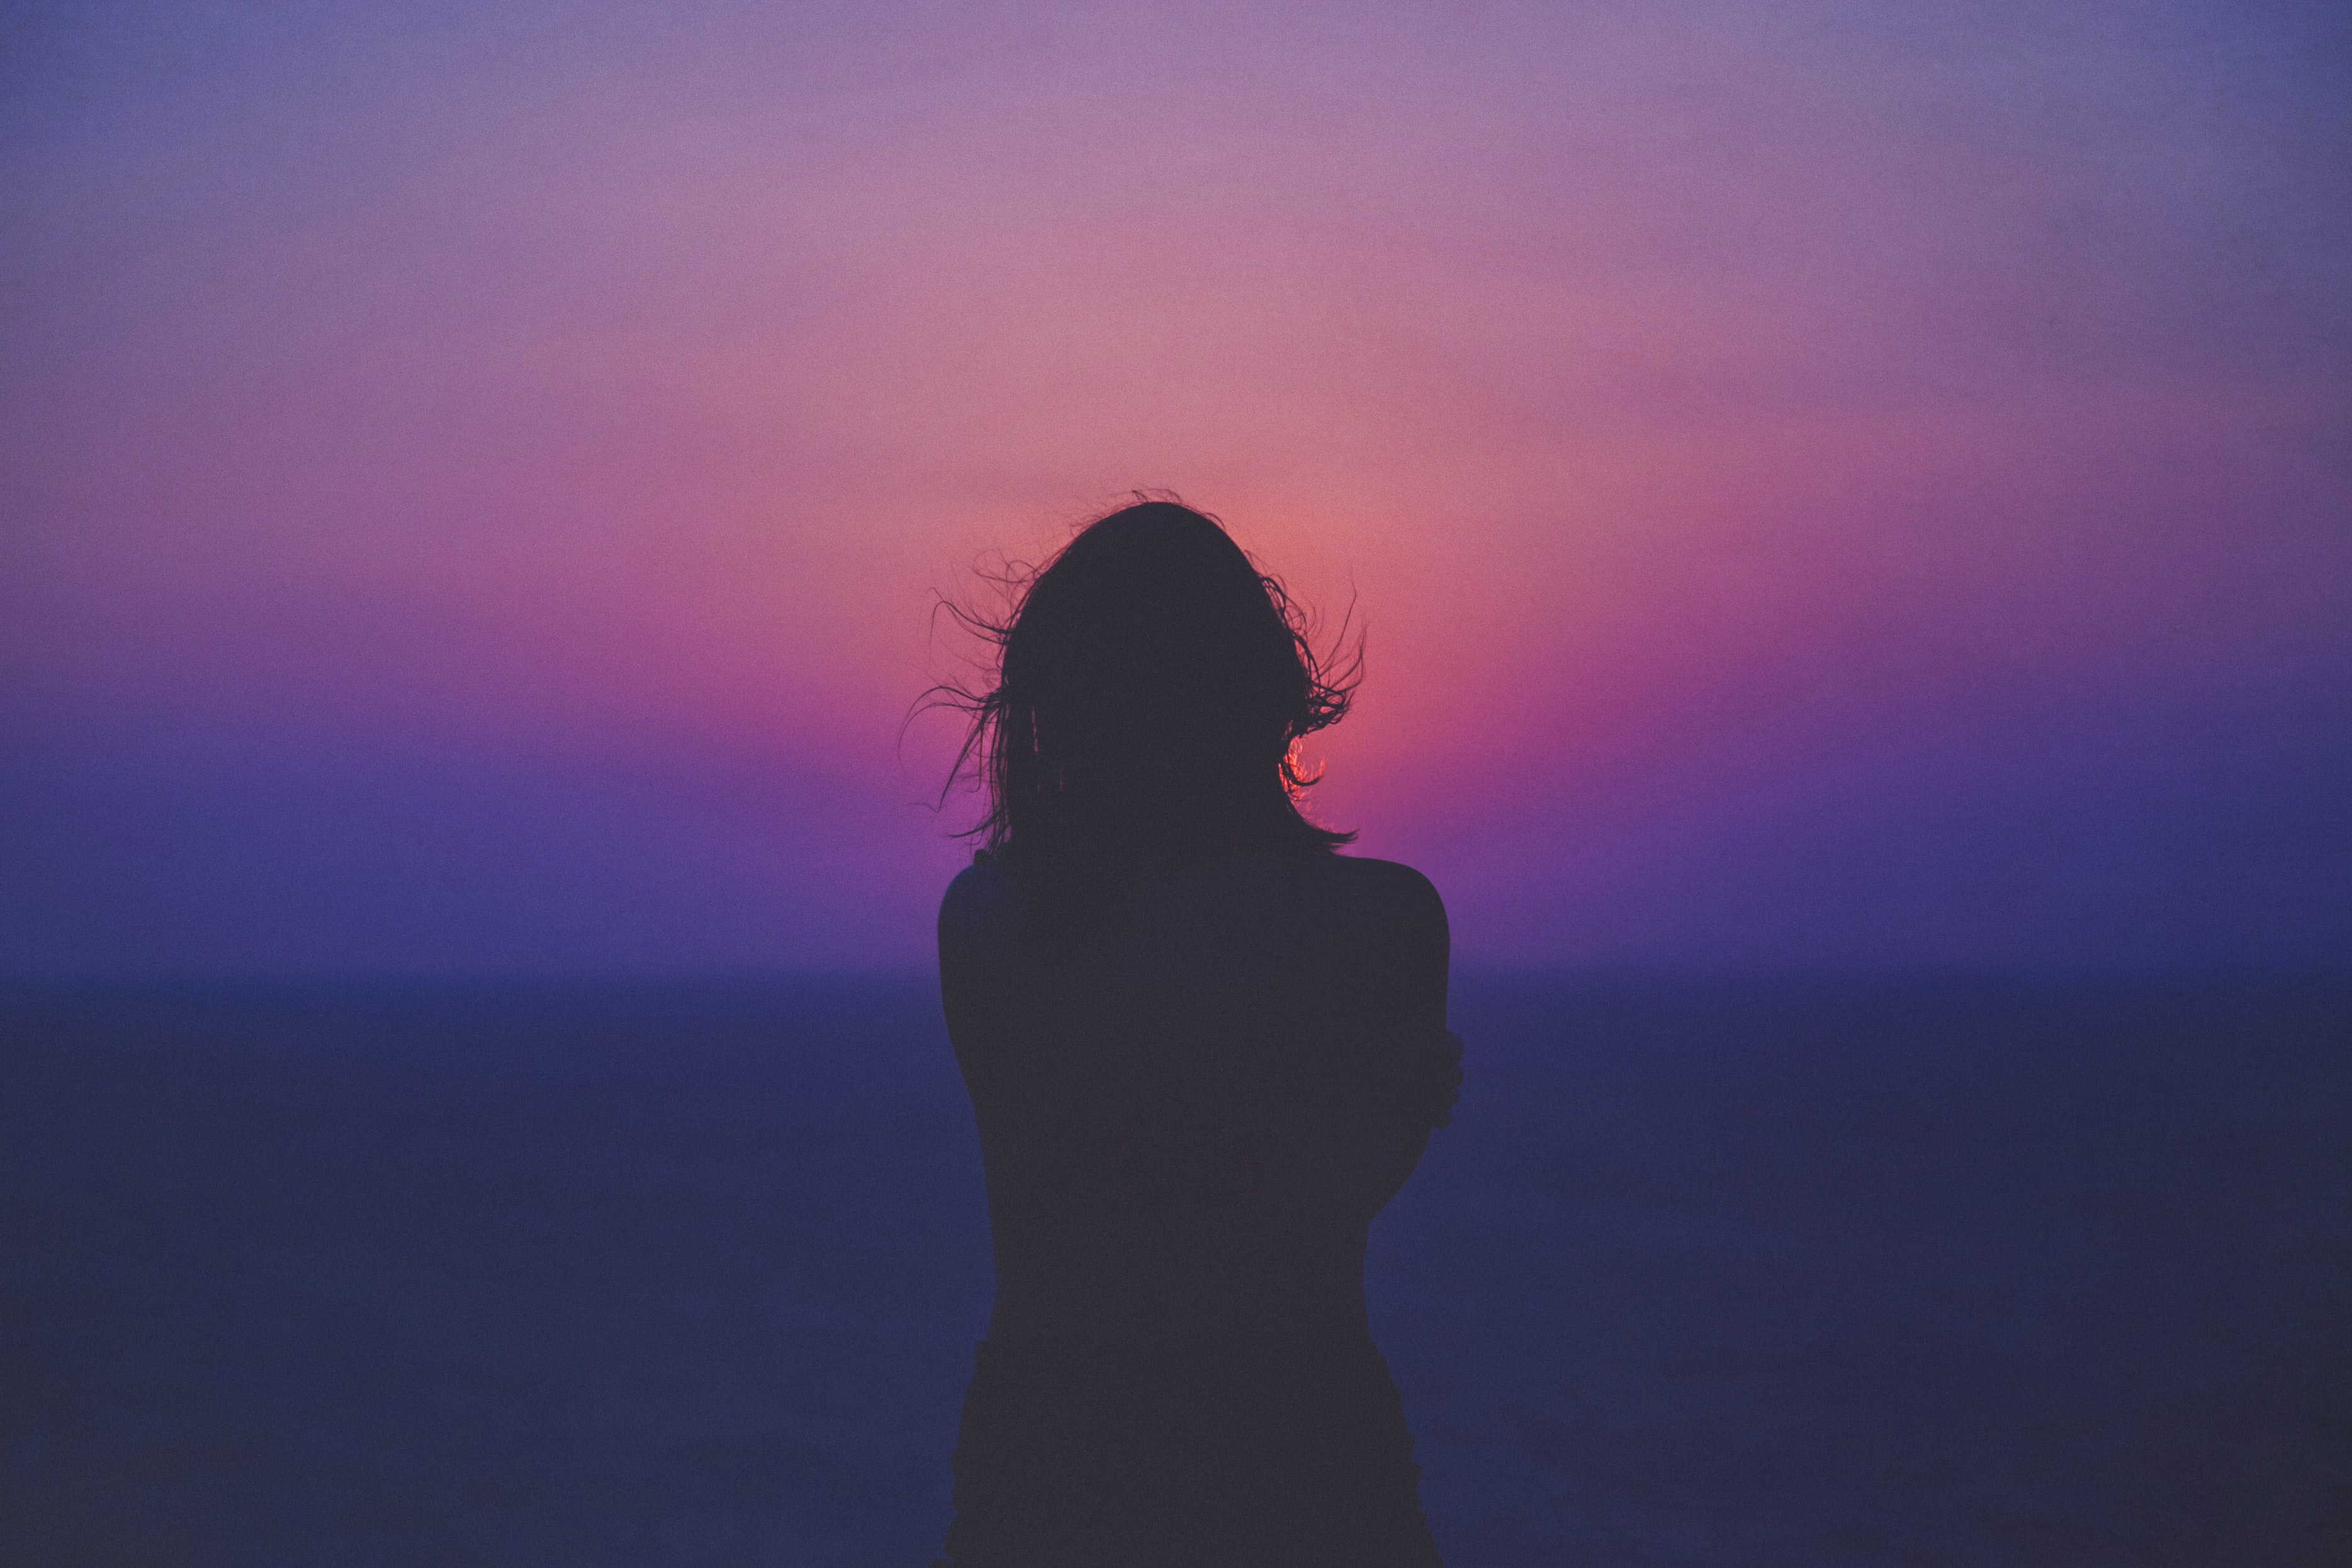 Silhouette of a woman against a pink and purple sunset, hair floating in the wind